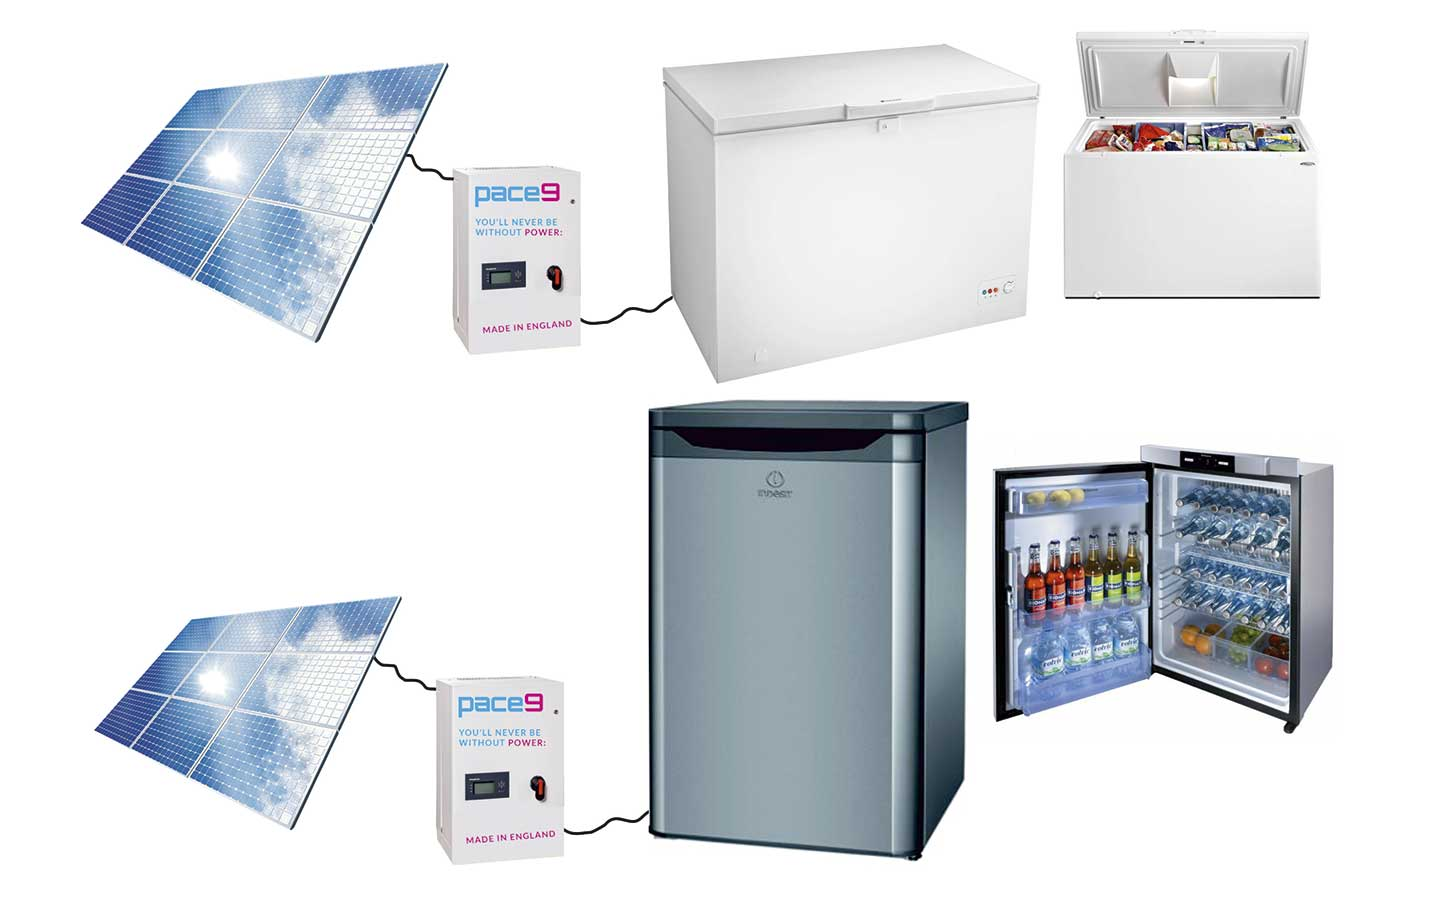 pace9 - Solar Powered Fridge - Freezer